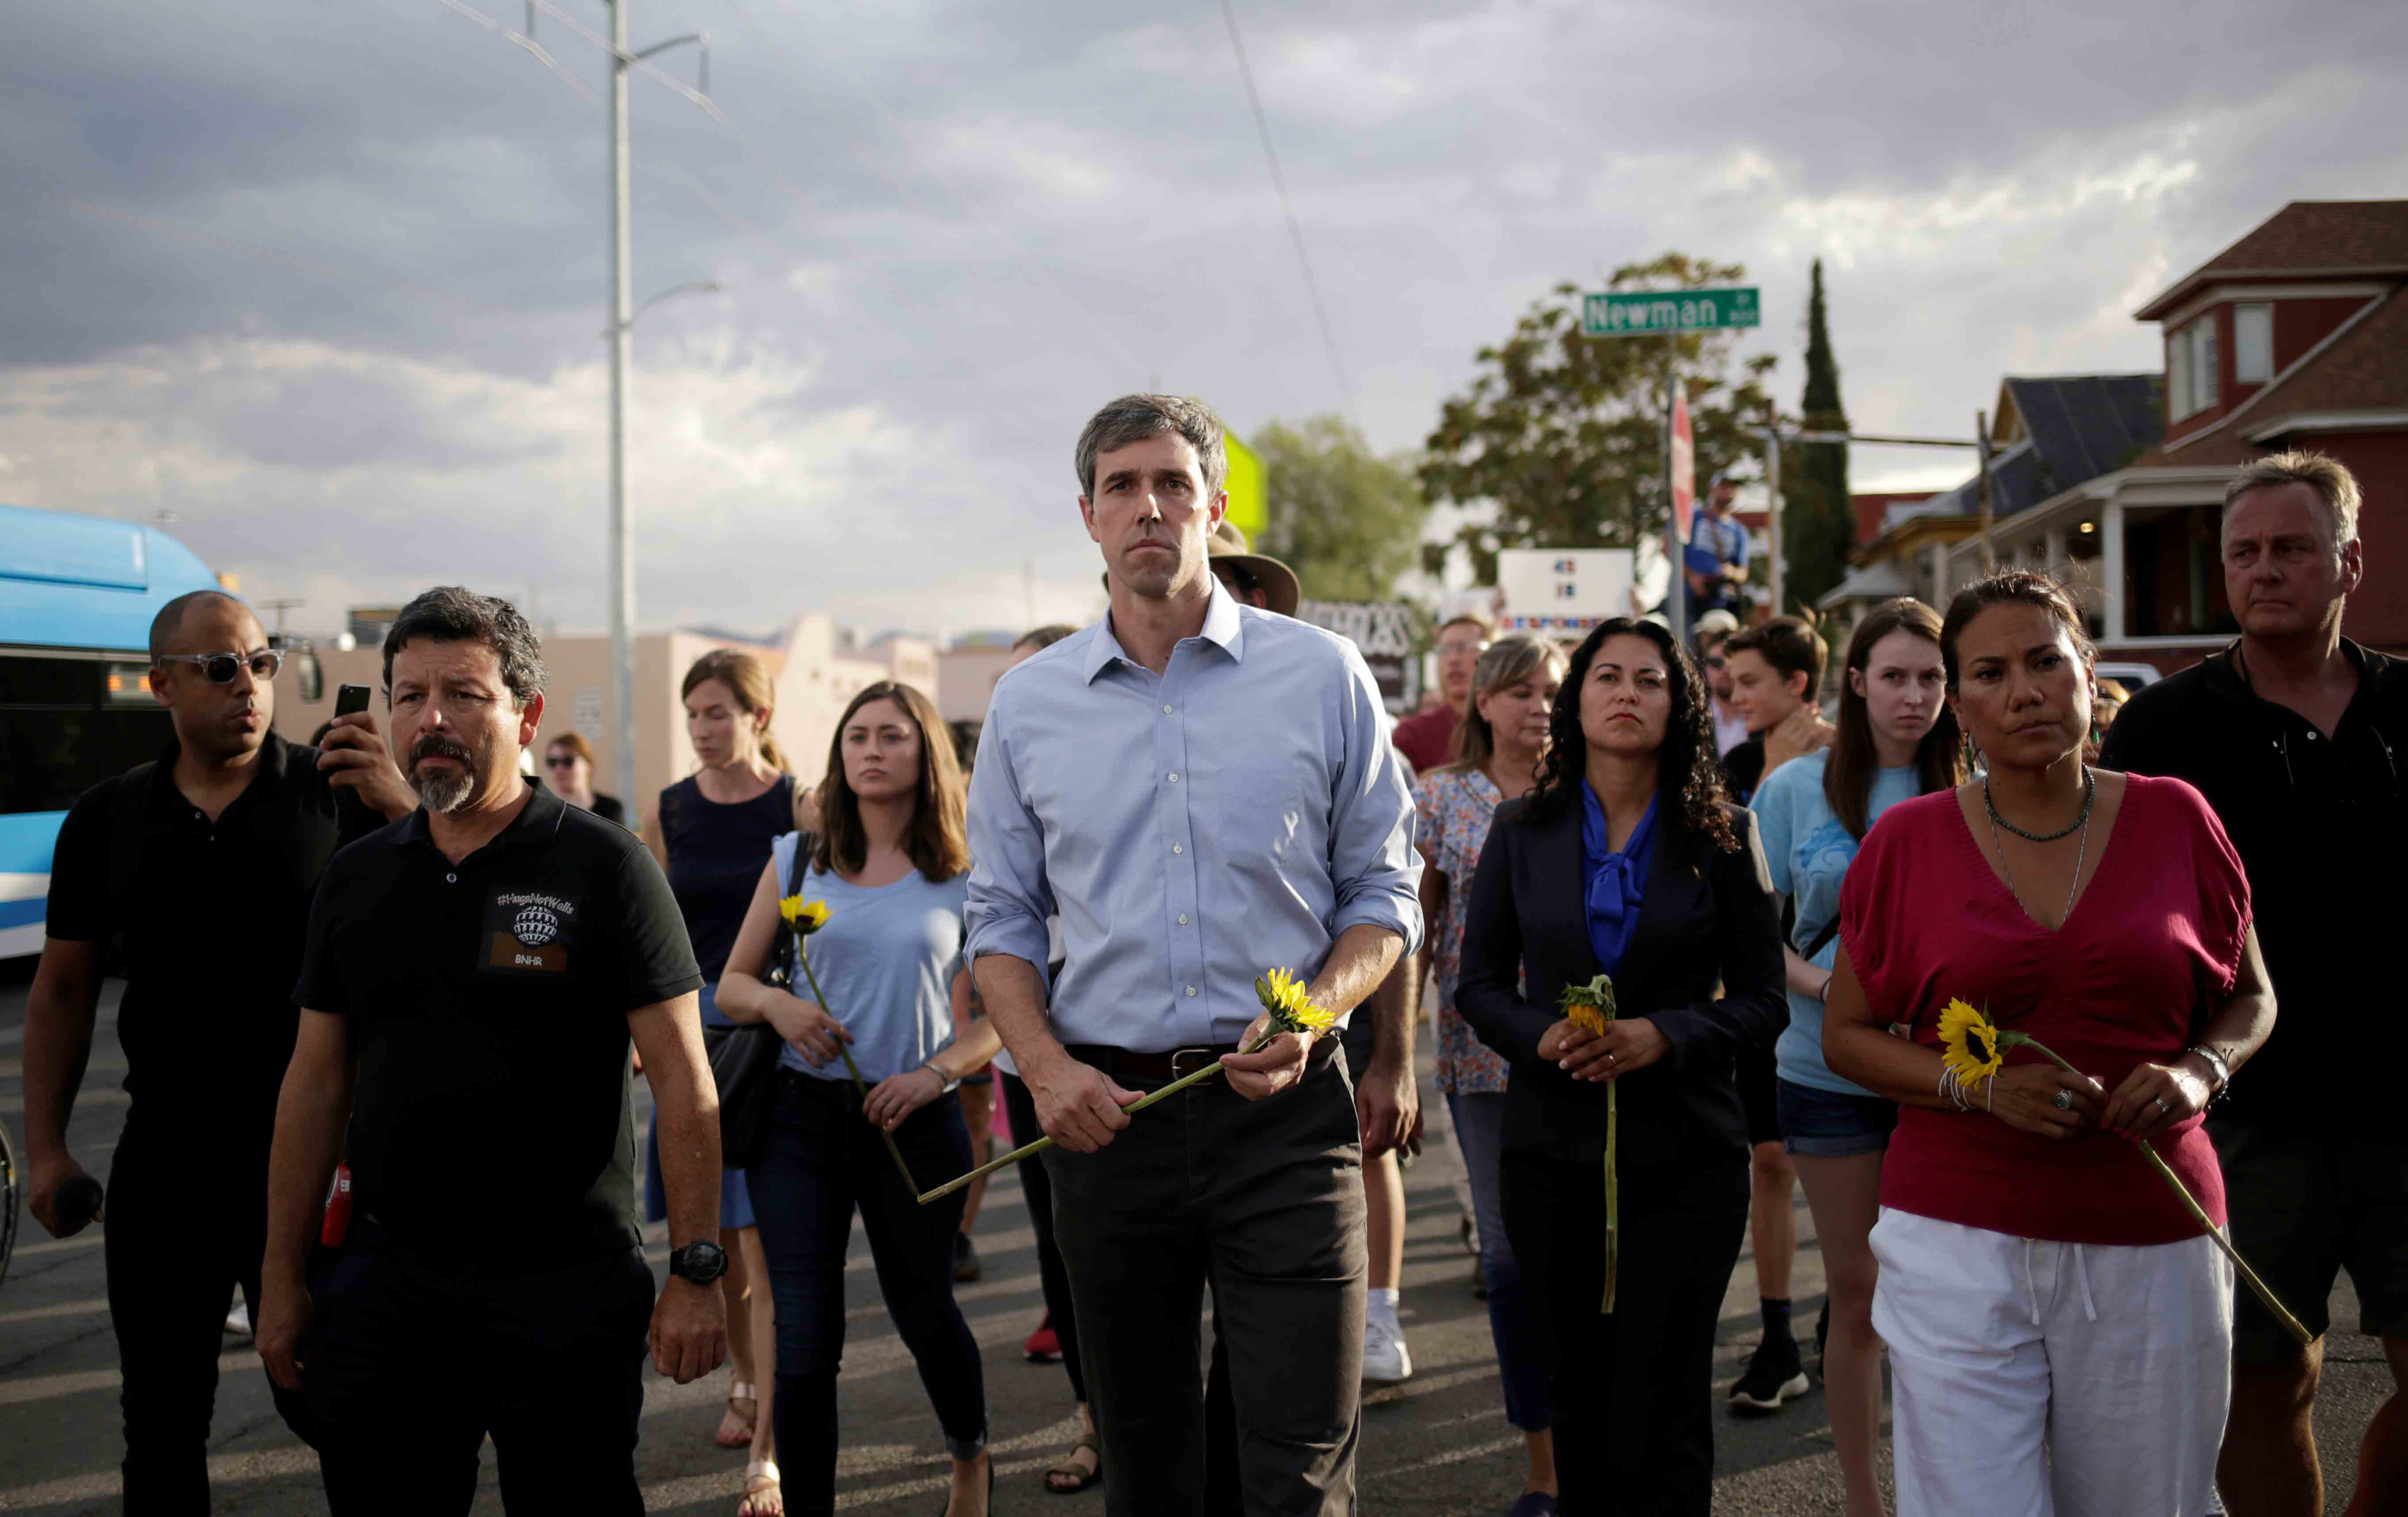 Beto O'Rourke participates in a rally against hate.